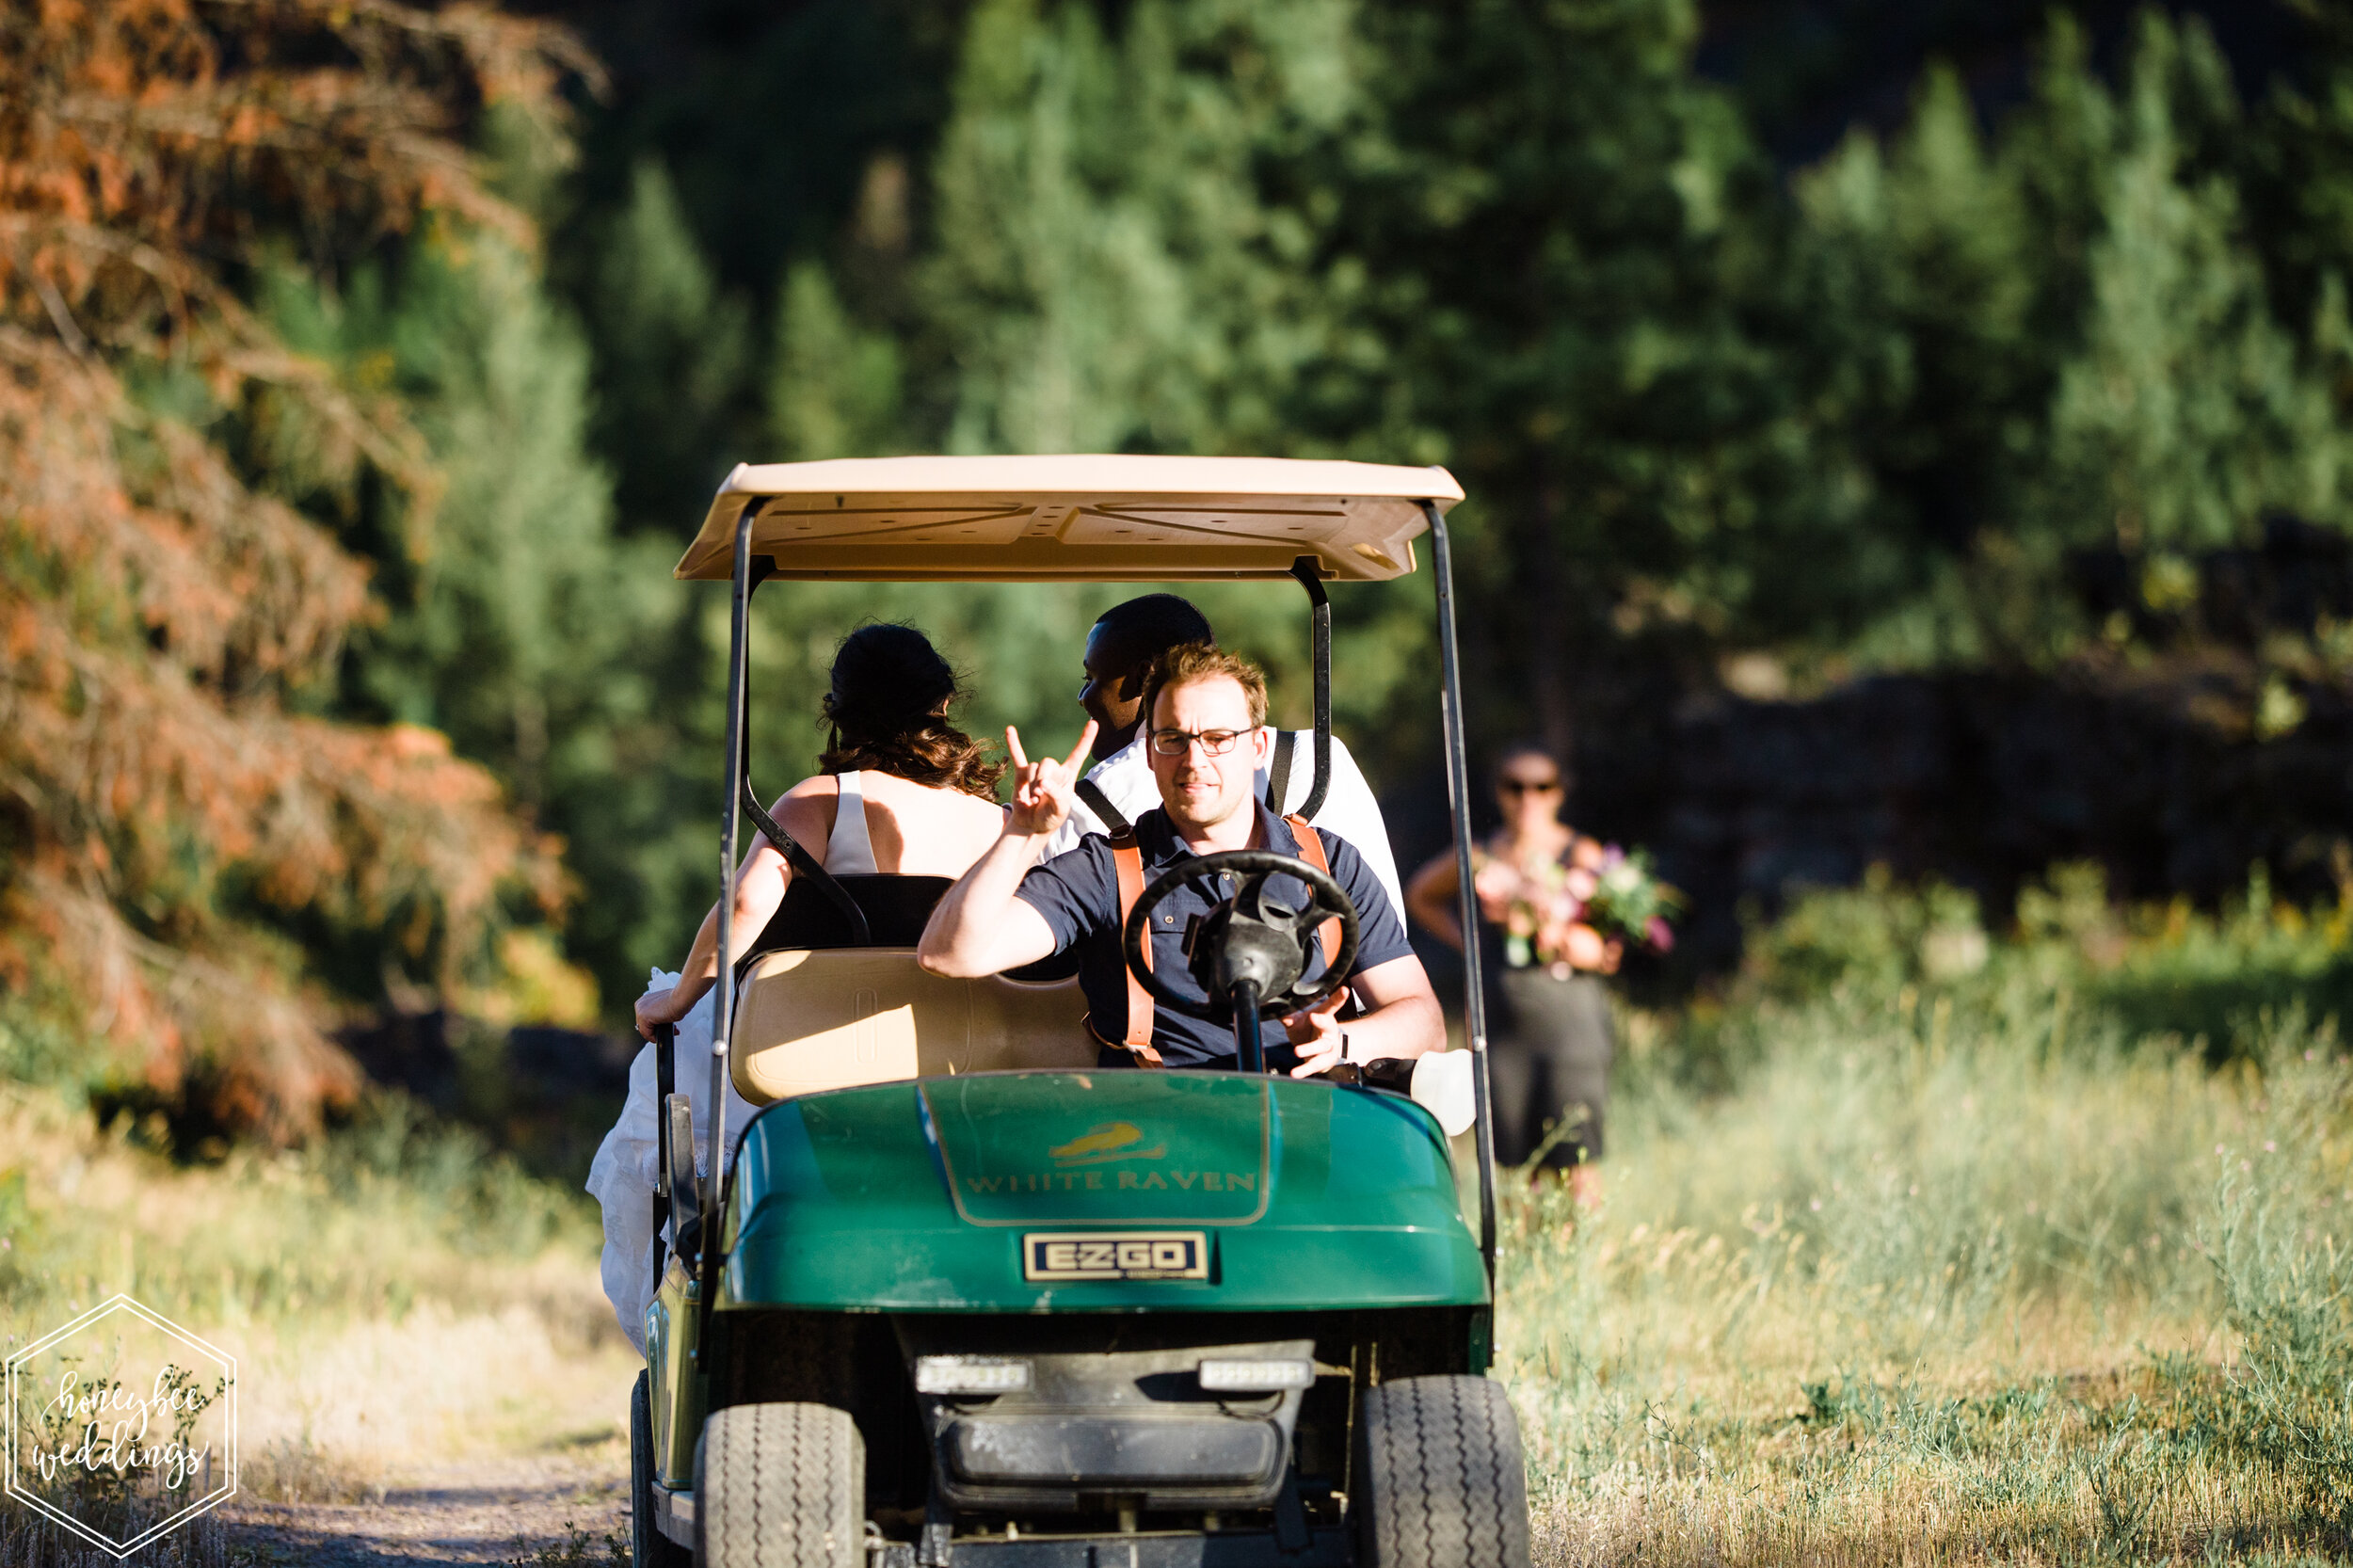 The couple's getaway car to their sunset session was the COOLEST golf cart with the even cooler driver, The Jake! Rock on!